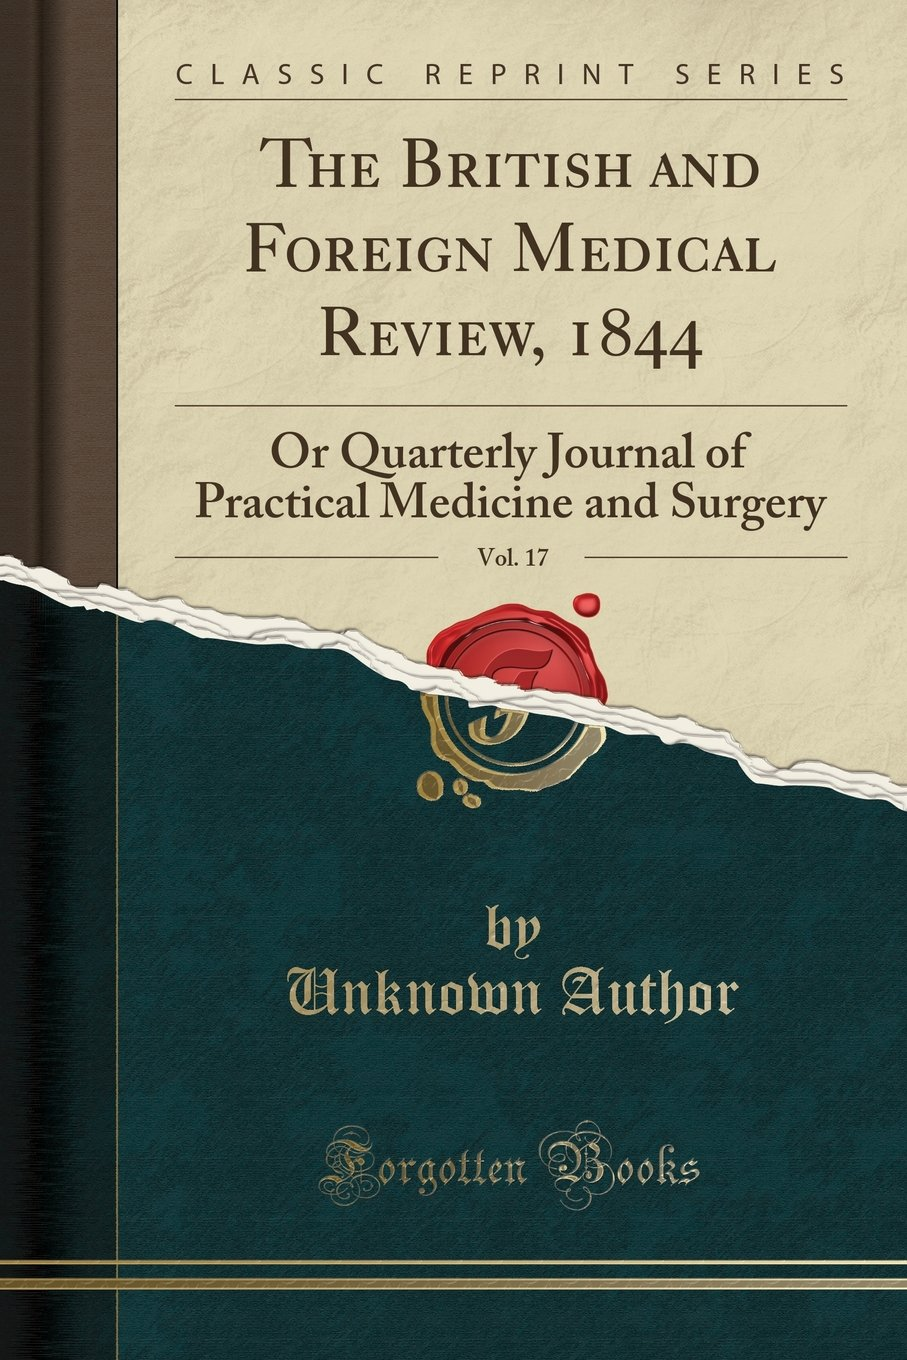 Download The British and Foreign Medical Review, 1844, Vol. 17: Or Quarterly Journal of Practical Medicine and Surgery (Classic Reprint) pdf